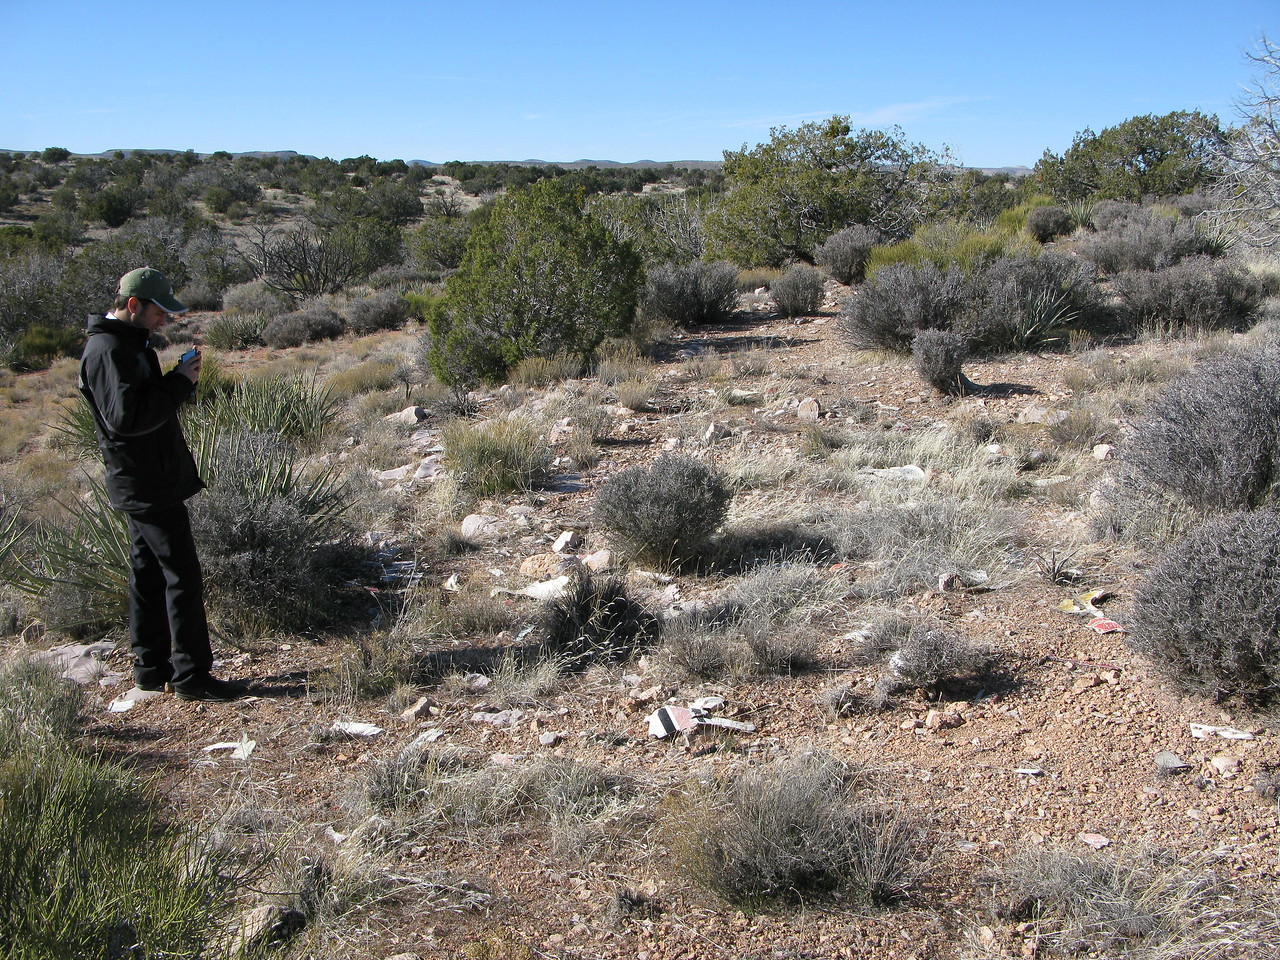 The concentration of wreckage debris suggests a steep vertical flight path to the ground. This also supports the NTSB's report that the aircraft had iced-up and stalled prior to impact.